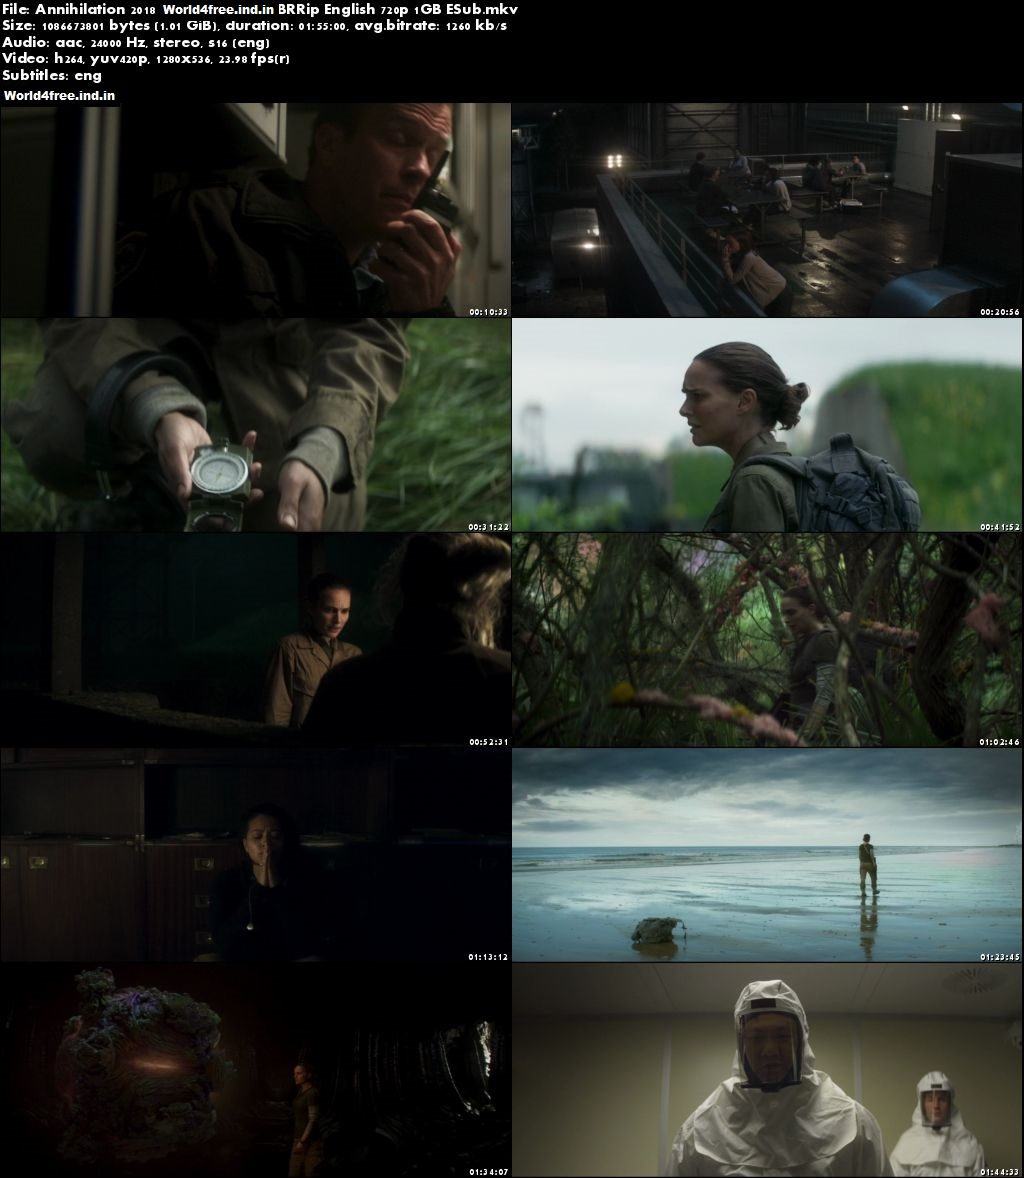 Annihilation 2018 world4free Full Hollywood Movie Download In Hd 720p